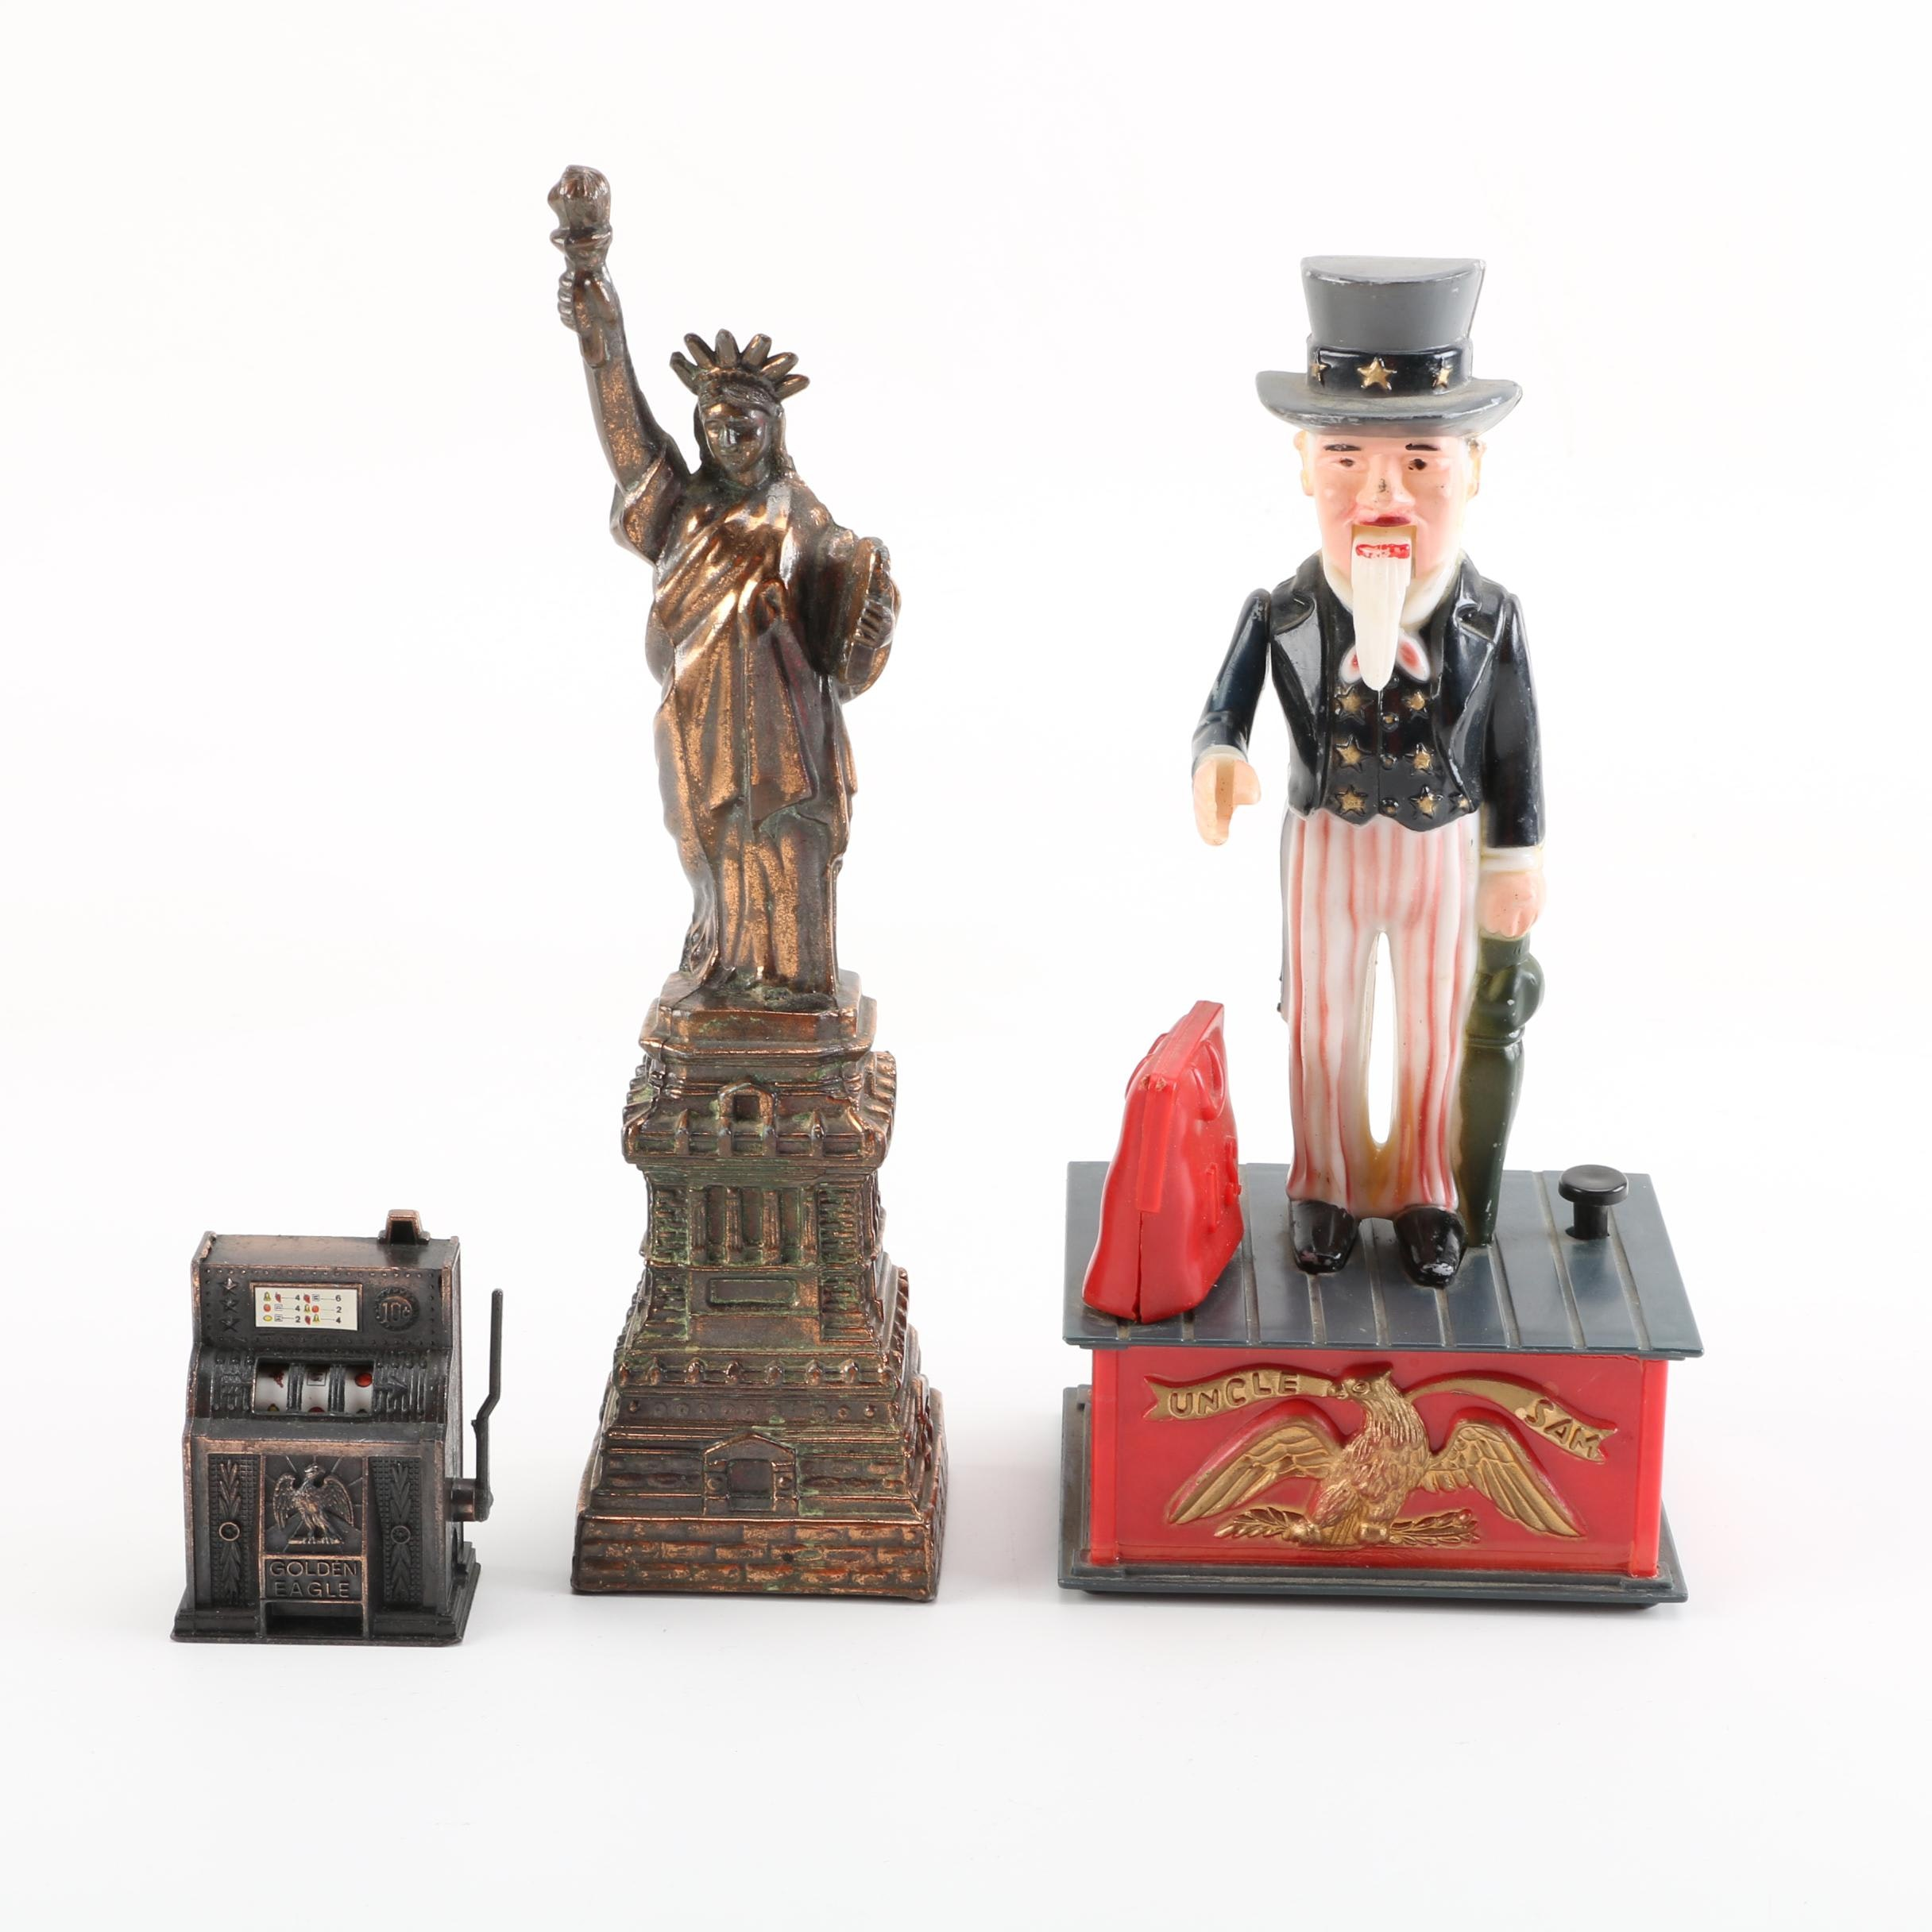 Slot Machine Pencil Sharpener, Lady Liberty Figurine, and Uncle Sam Coin Bank